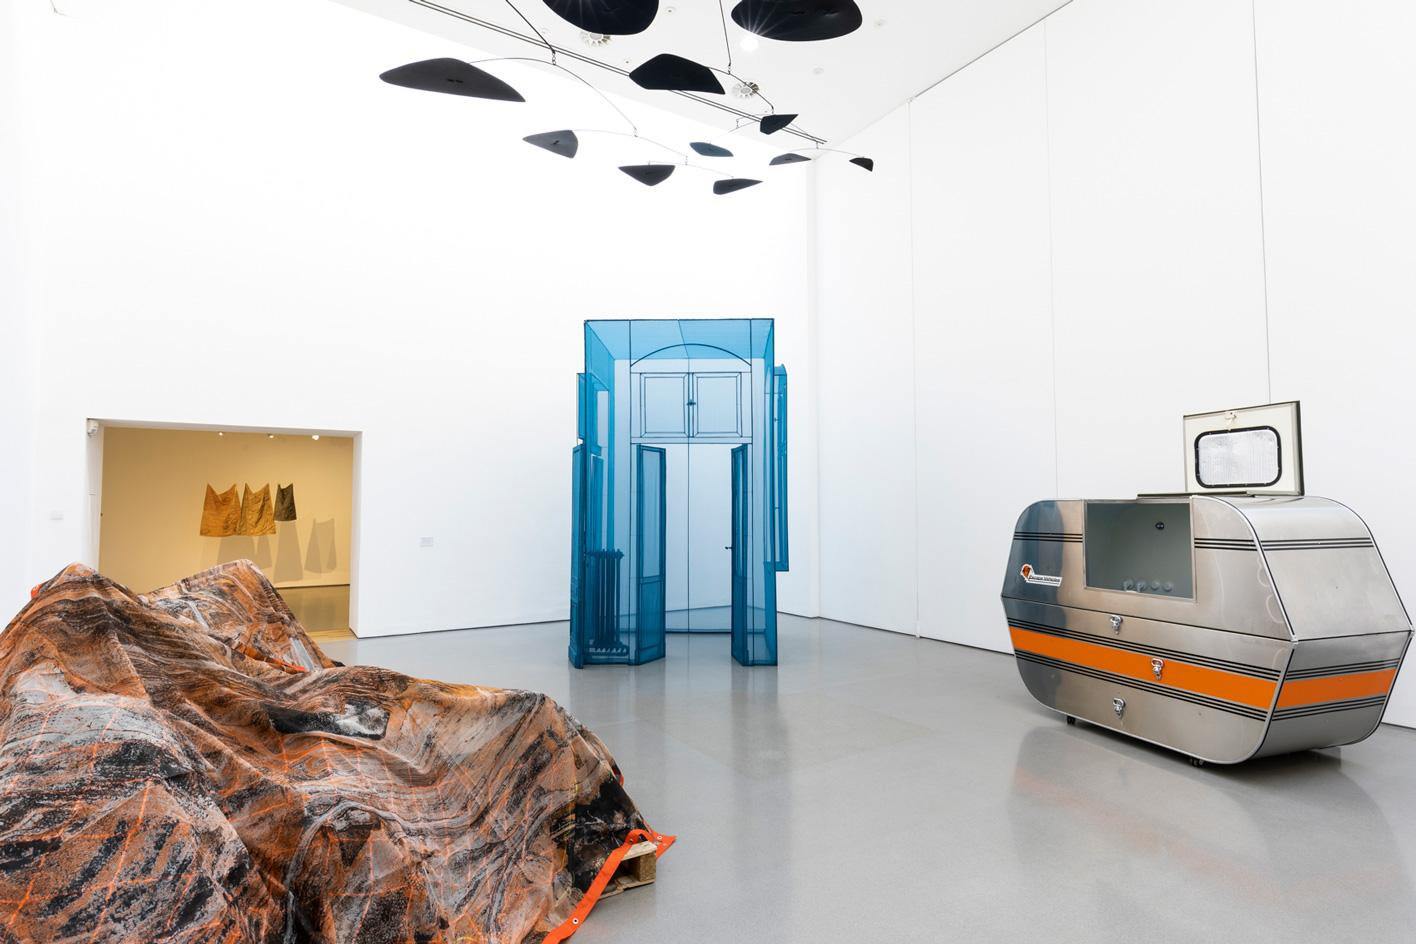 Installation view of Portable Sculpture, on display at the Henry Moore Institute in 2021. Photo Nick Singleton 4